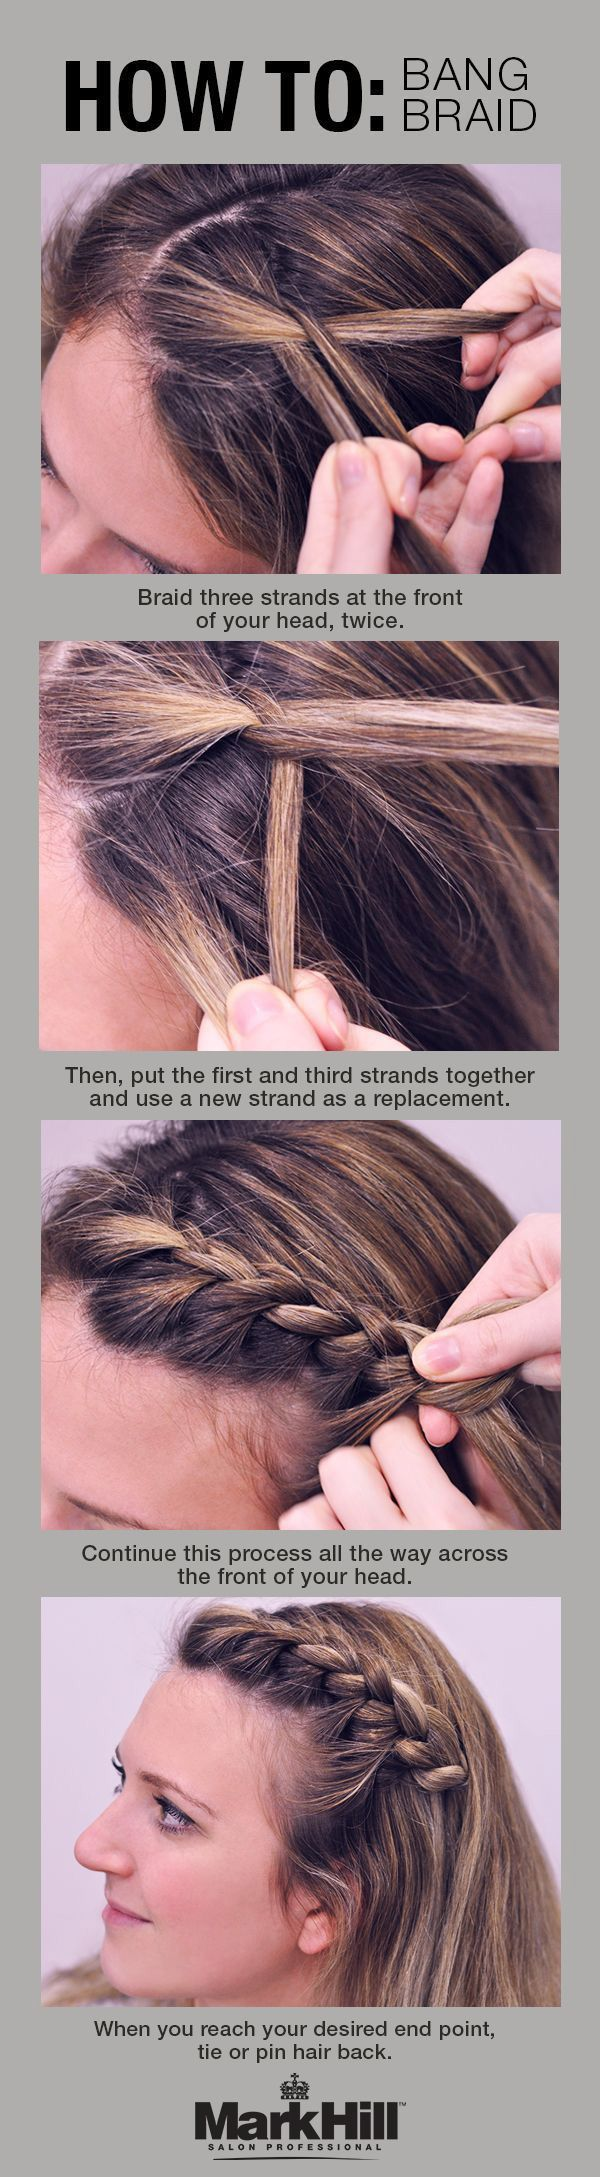 easy hairstyles for bangs to get them out of your face easy